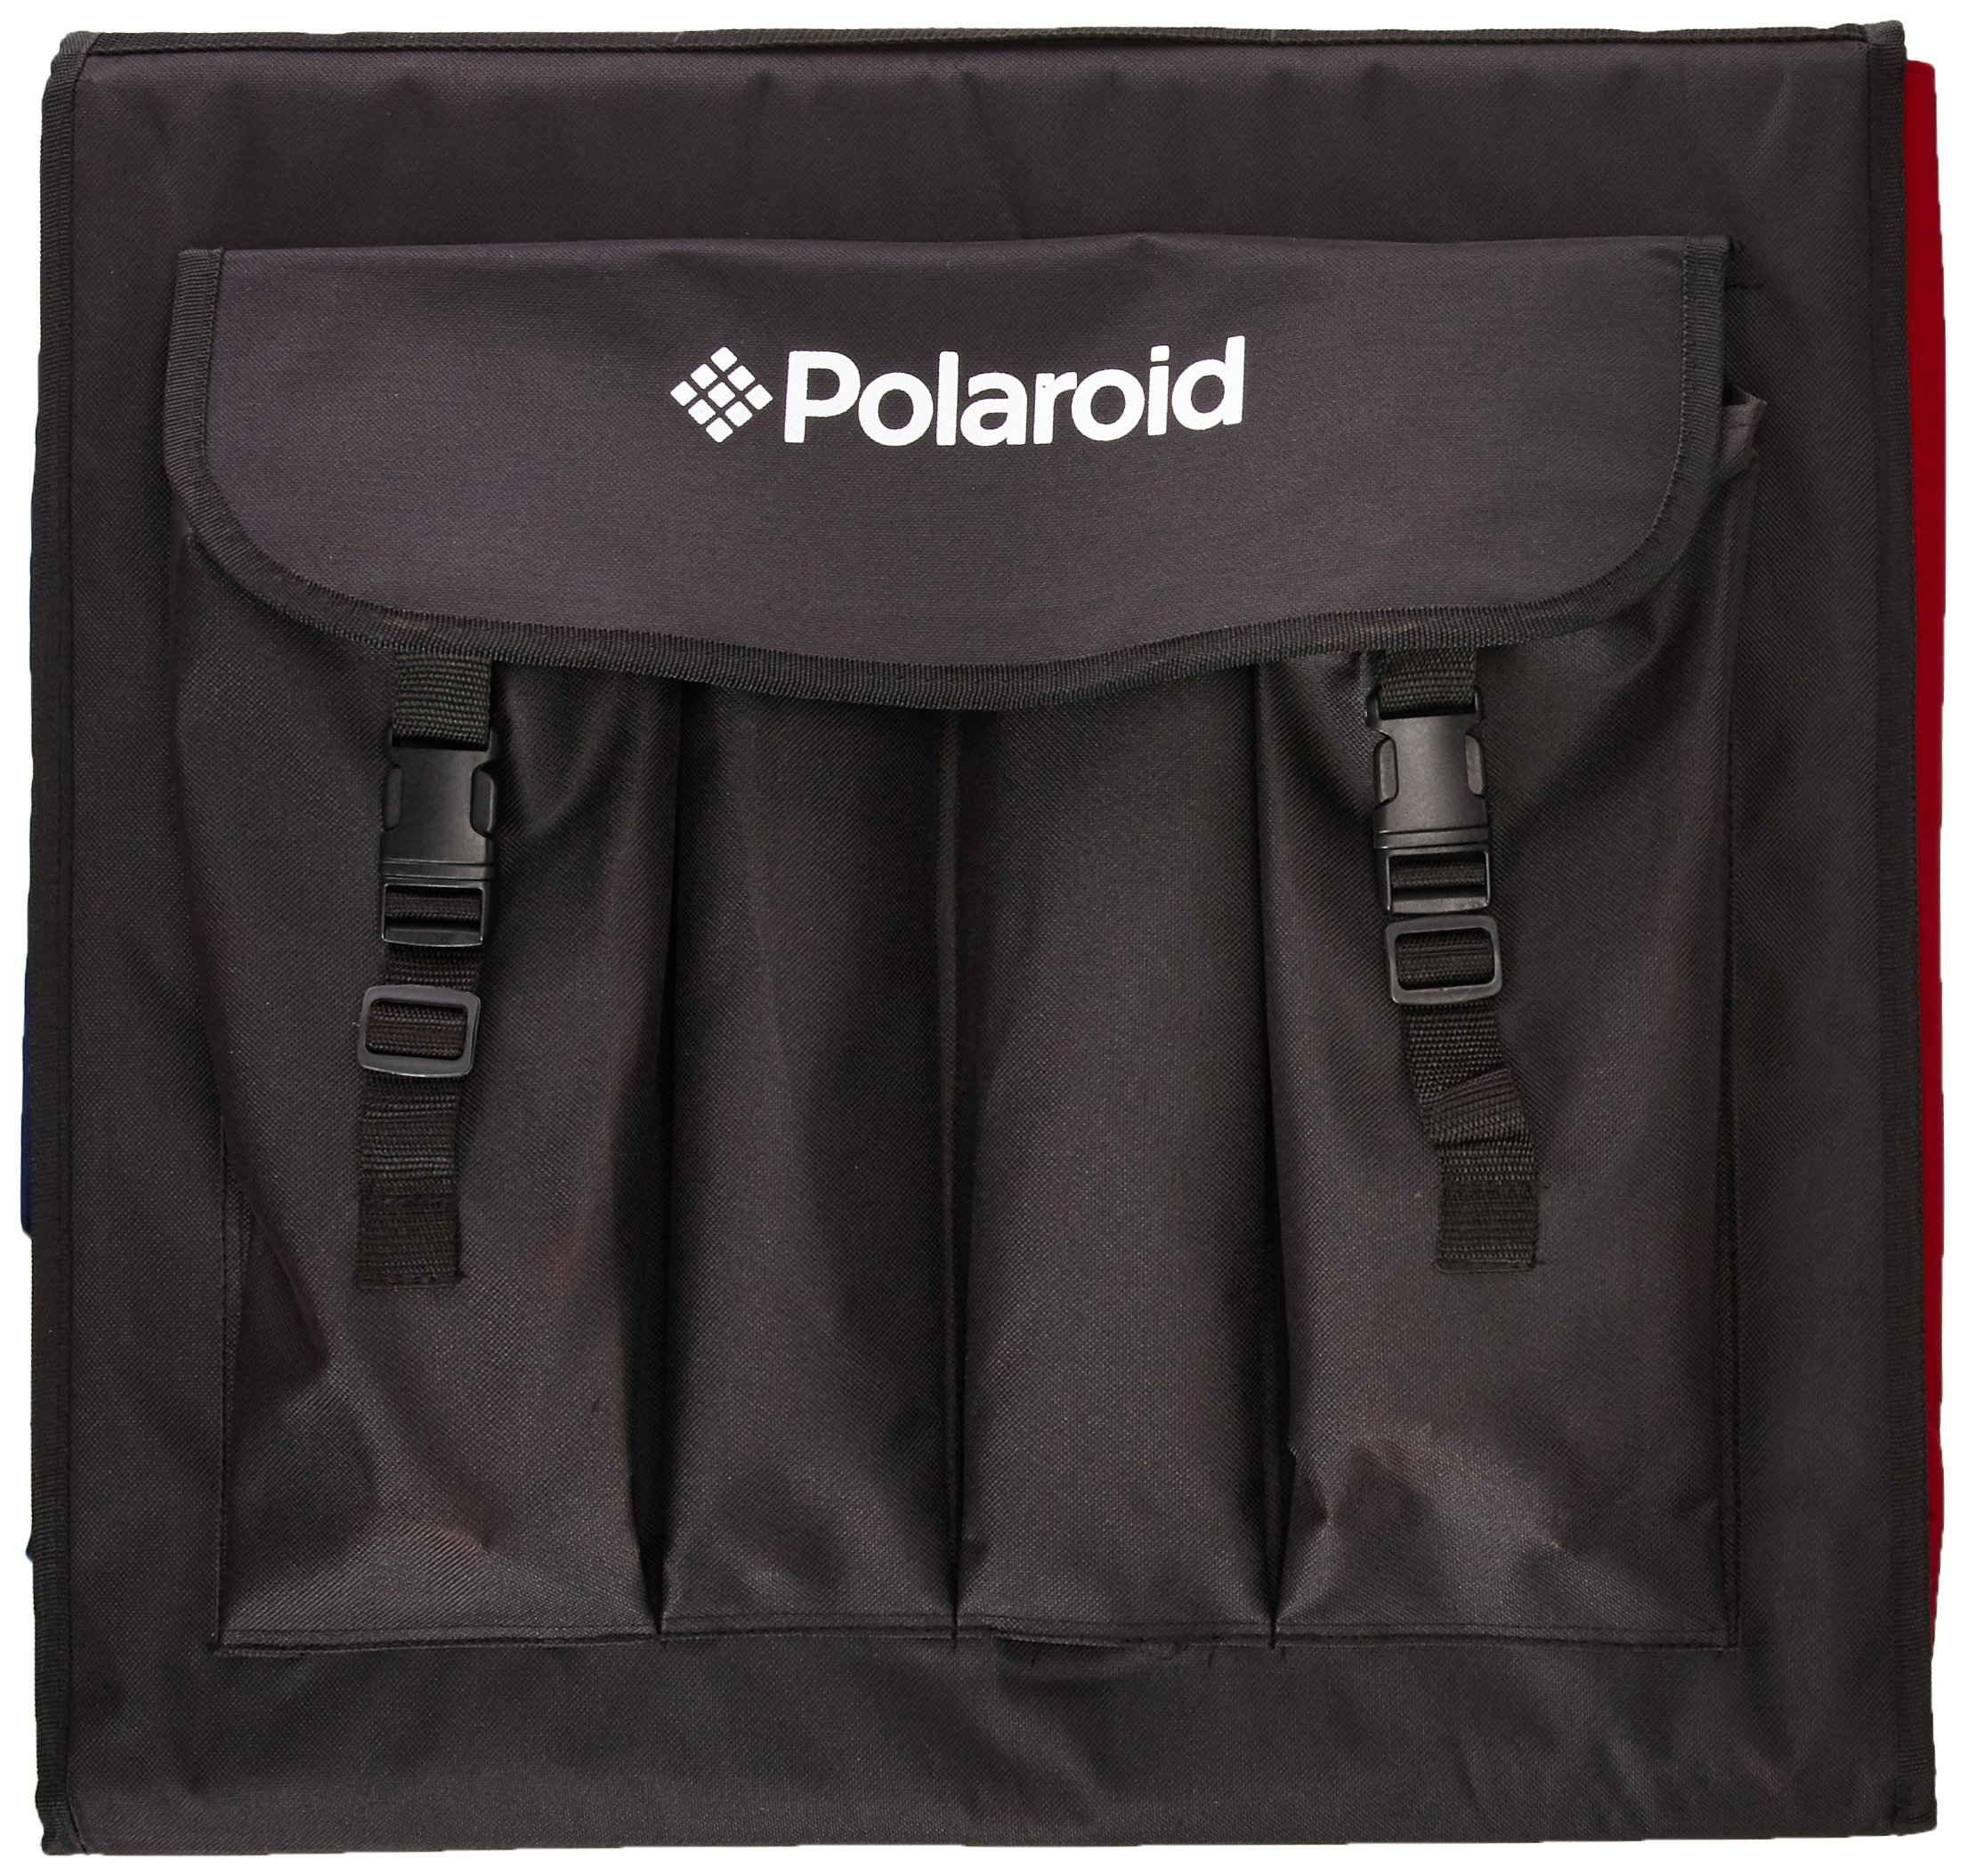 Polaroid Pro Table Top Photo Studio Kit with 2 LED Lights, 2 Light Stands, 1 Tripod, 4 Color Backdrops, 3 Diffuser Screens, 1 Carry Bag by Polaroid (Image #2)